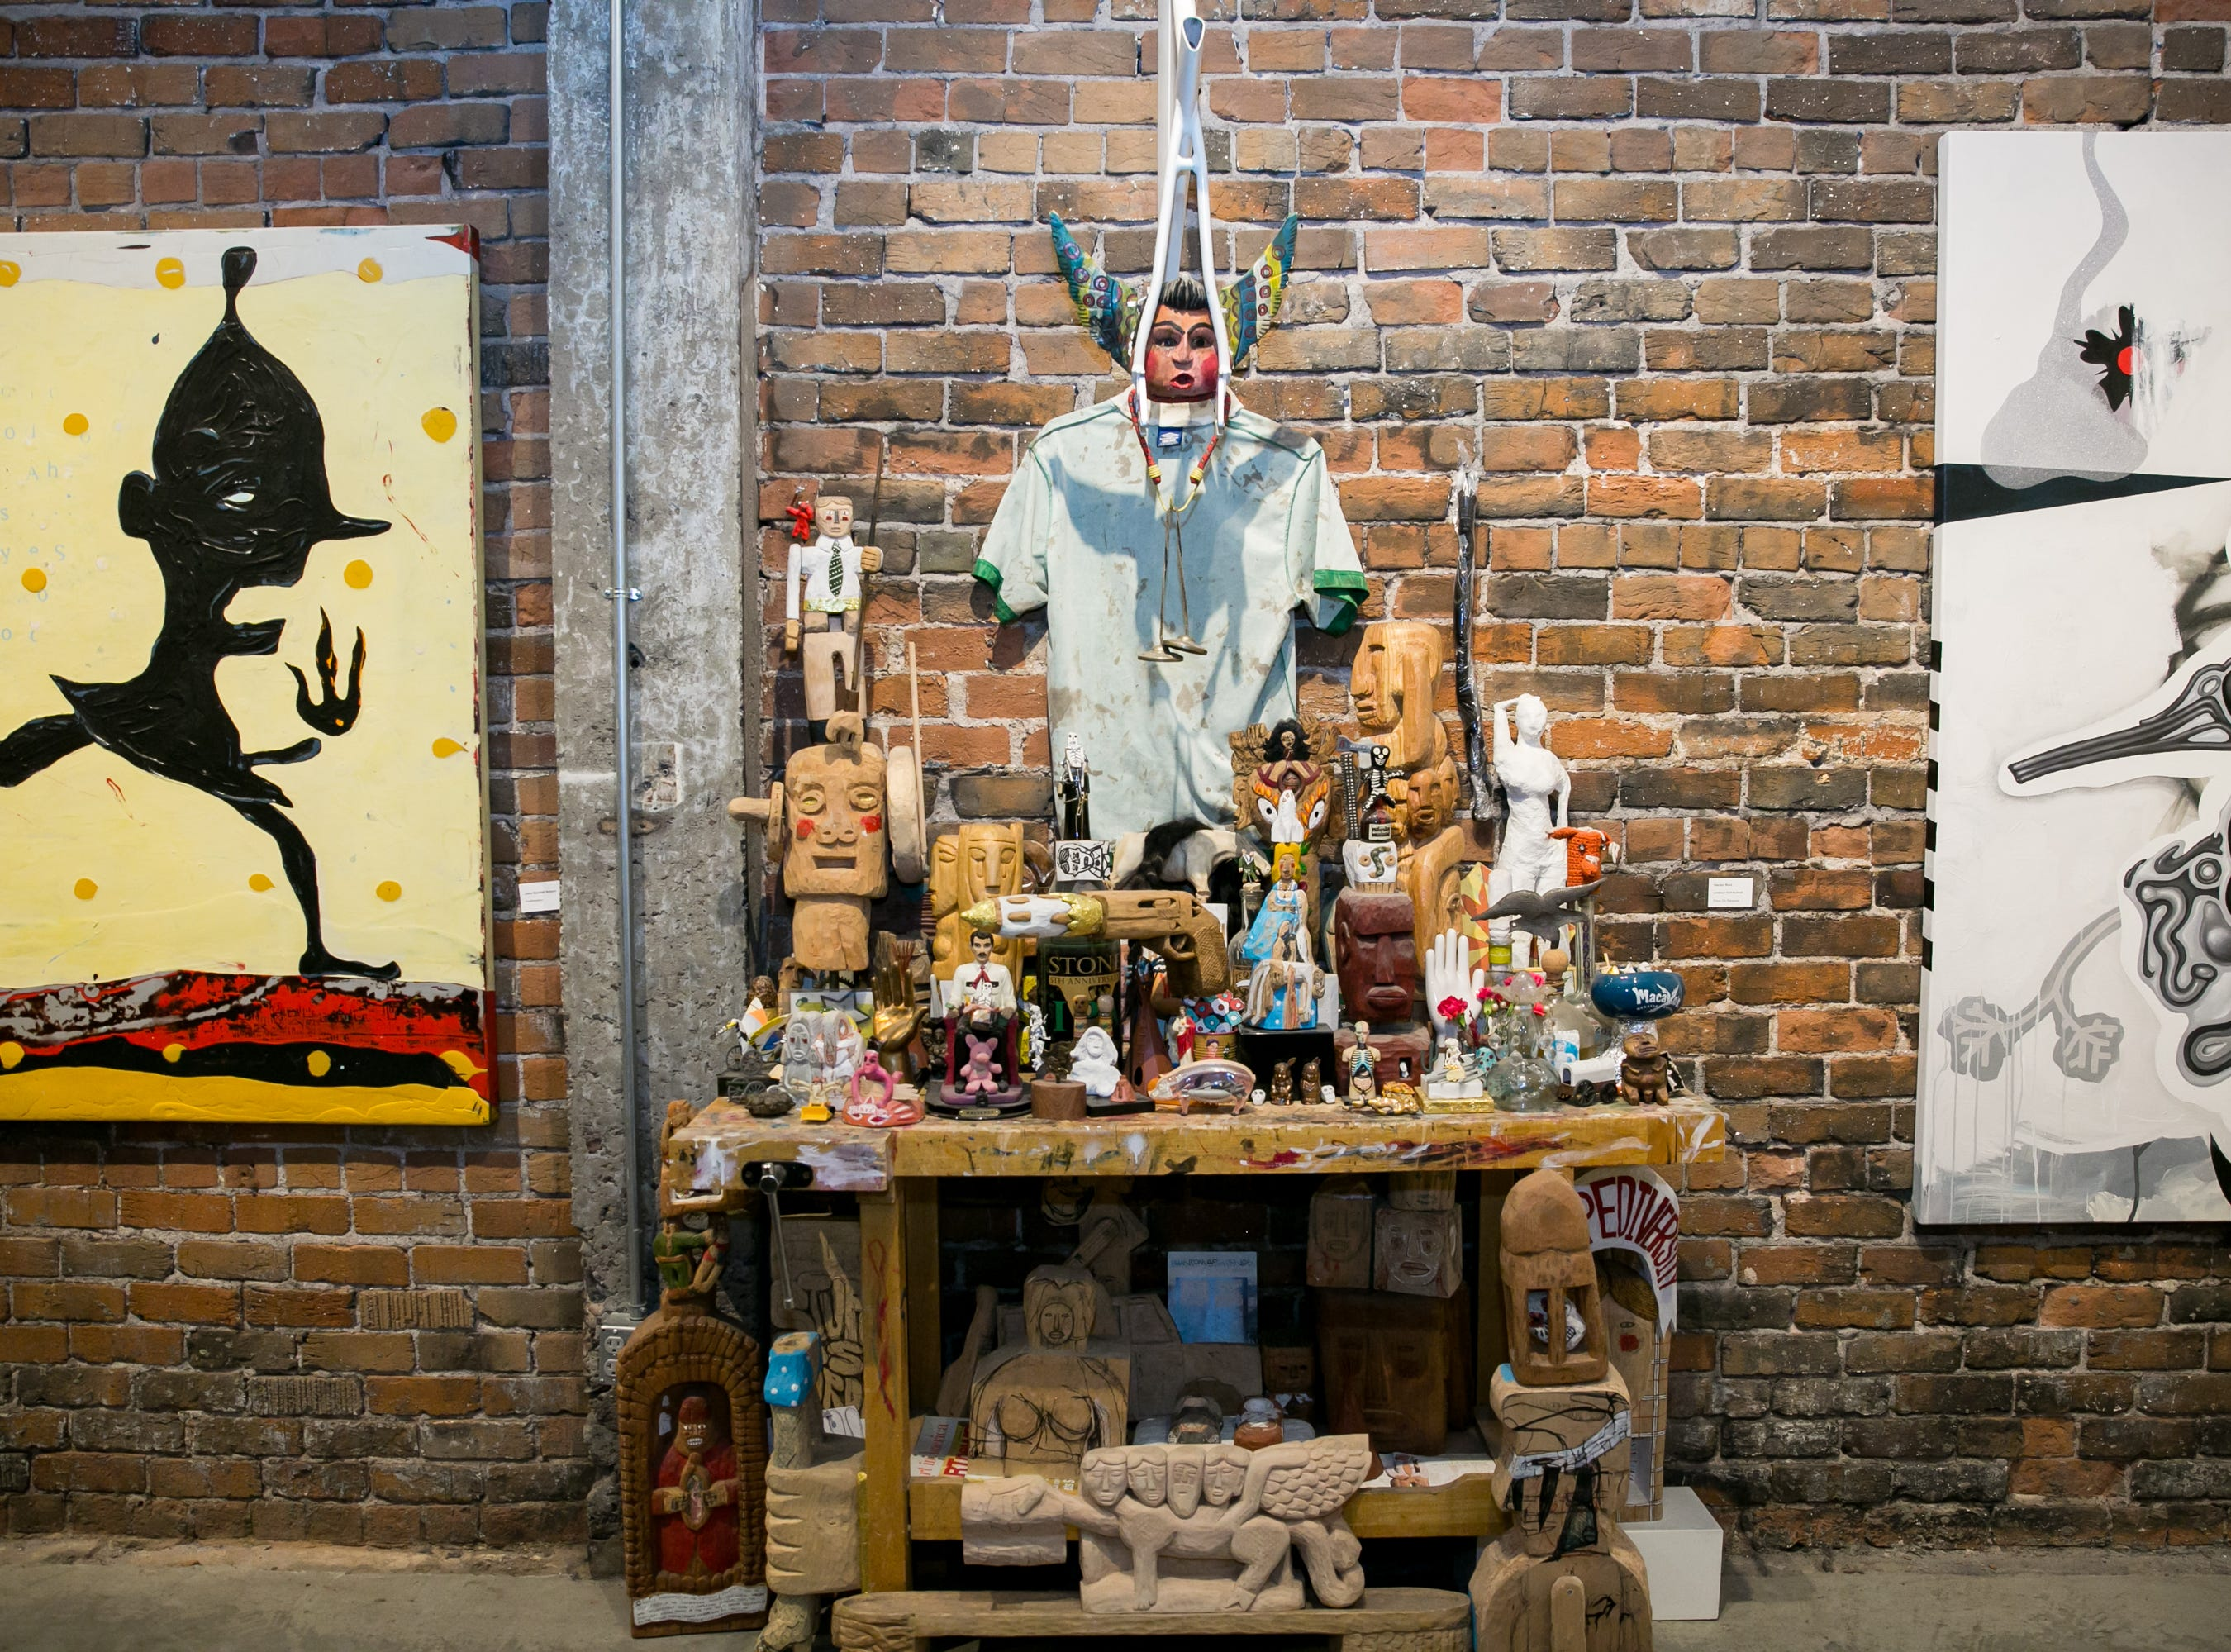 This altar was a conversation starter during Chaos Theory 19 at Legend City Studios during First Friday on October 5, 2018.